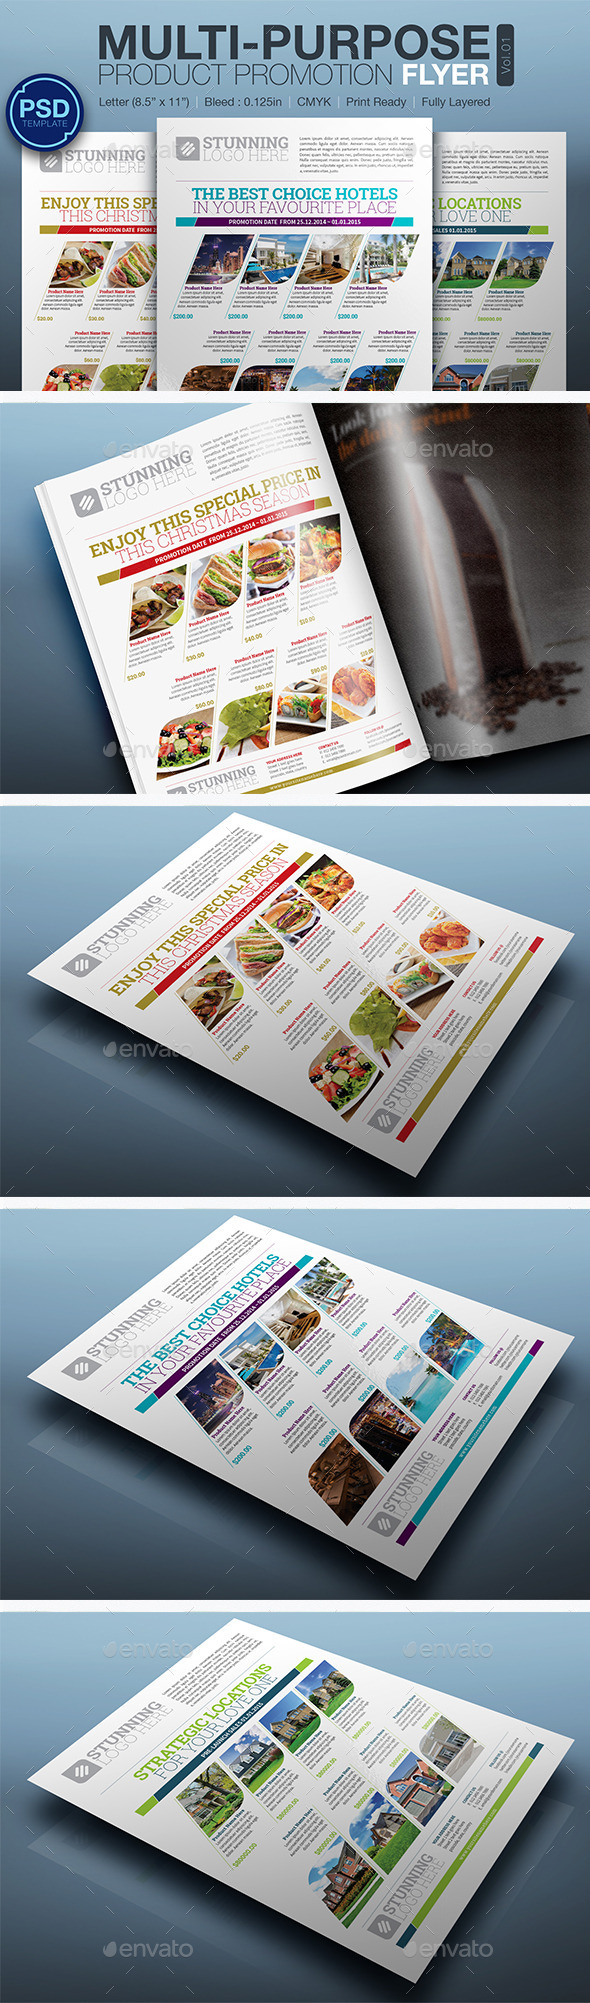 Product Promotion Flyer Vol.01 - Commerce Flyers